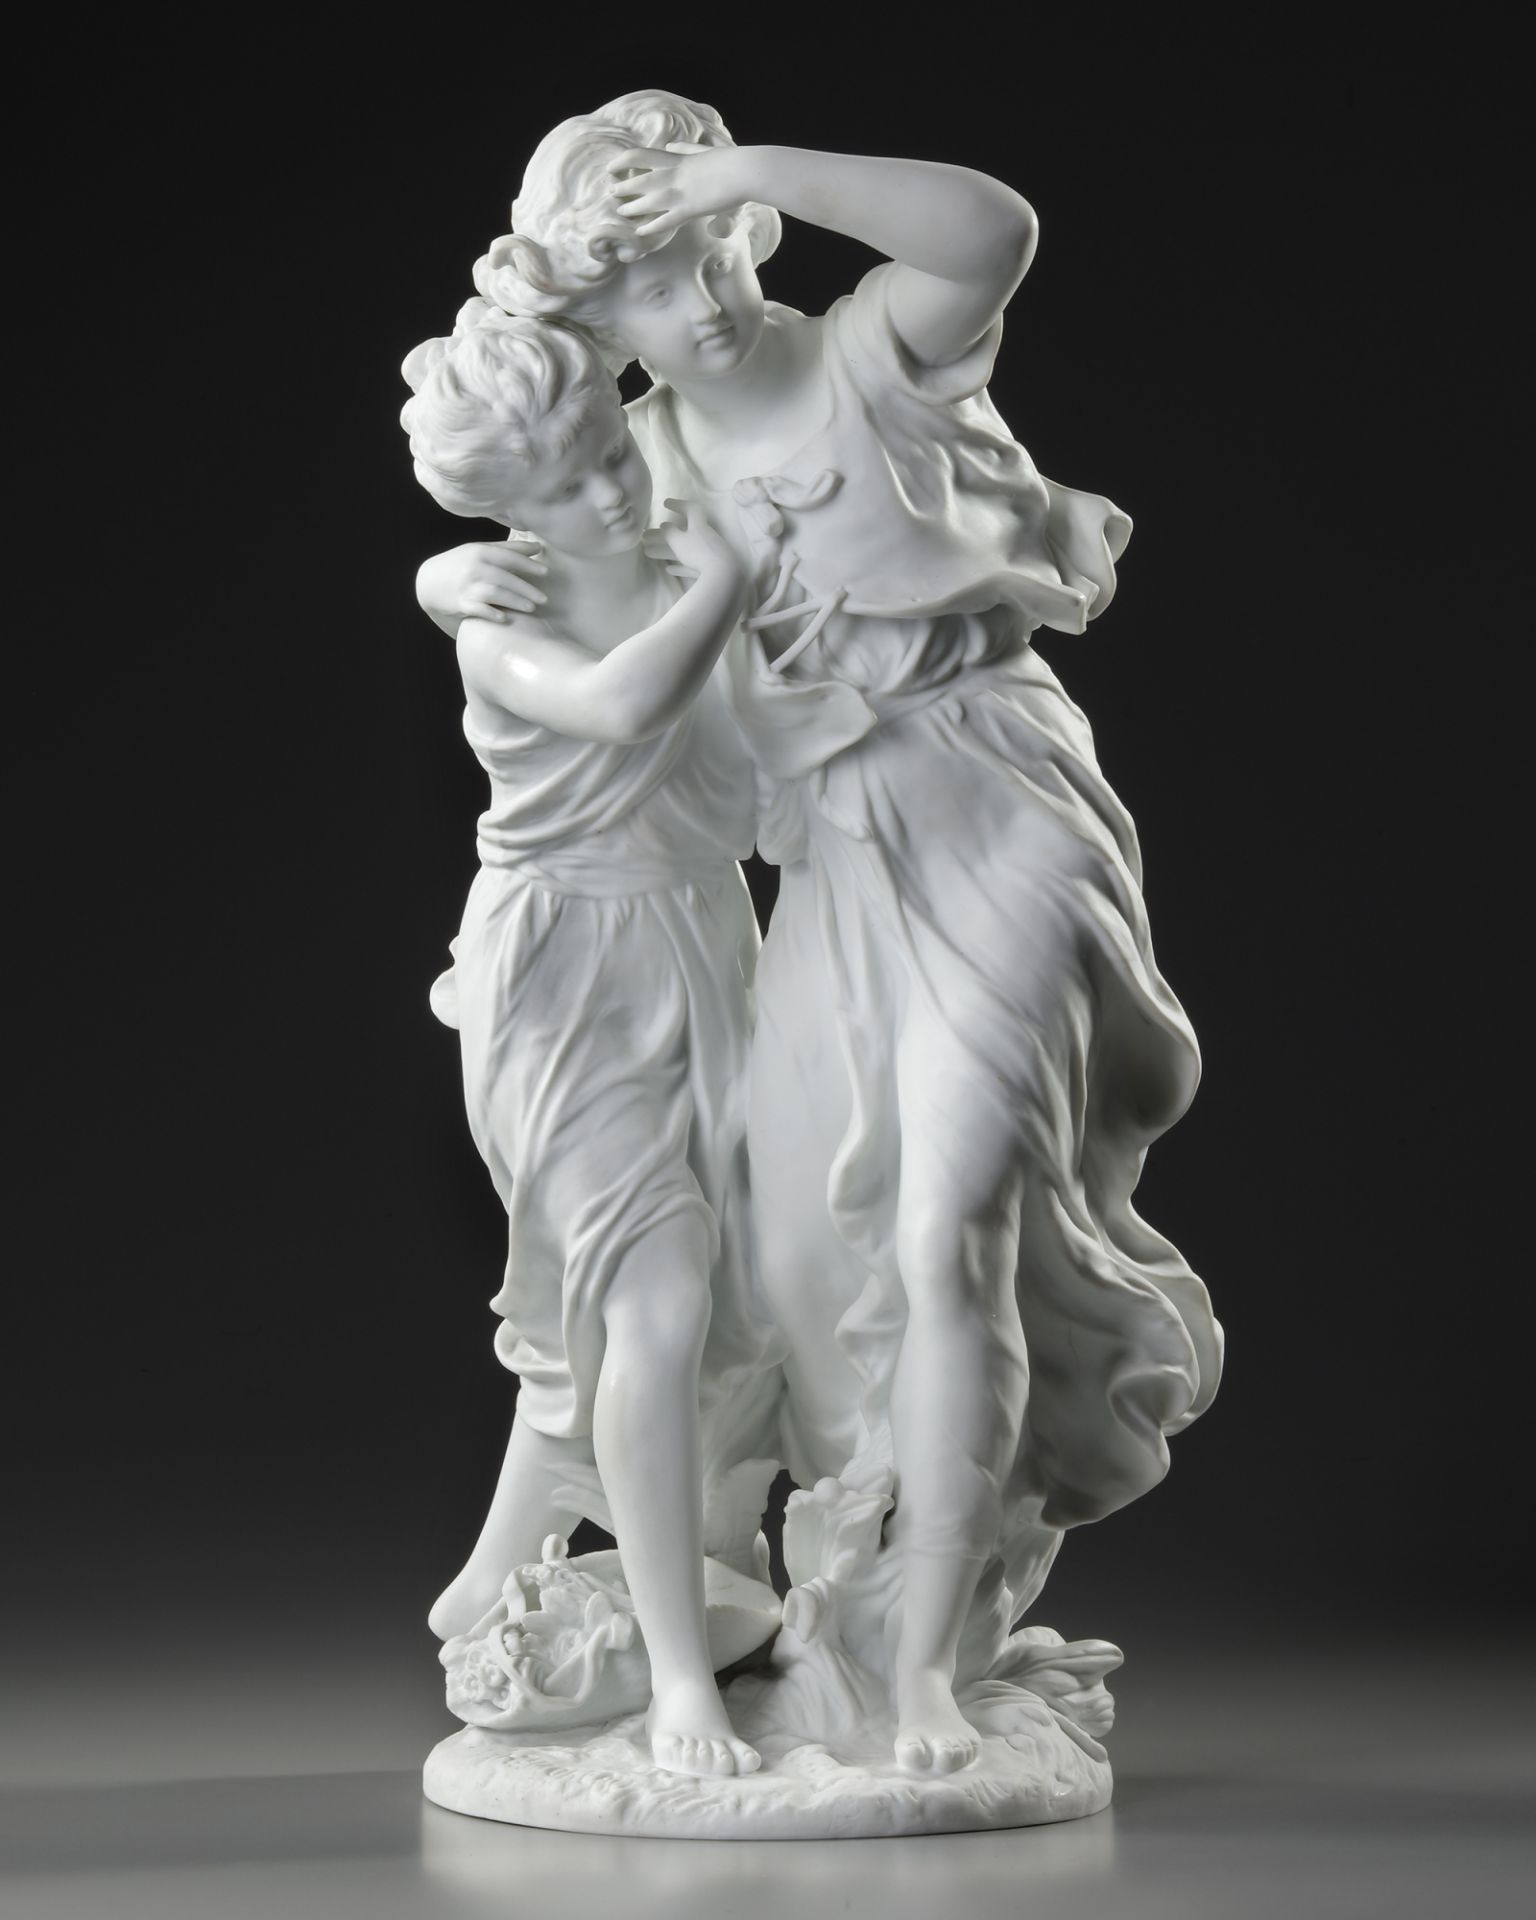 A FRENCH BISCUIT STATUE, SIGNED BY MOREAU (1834-1917)